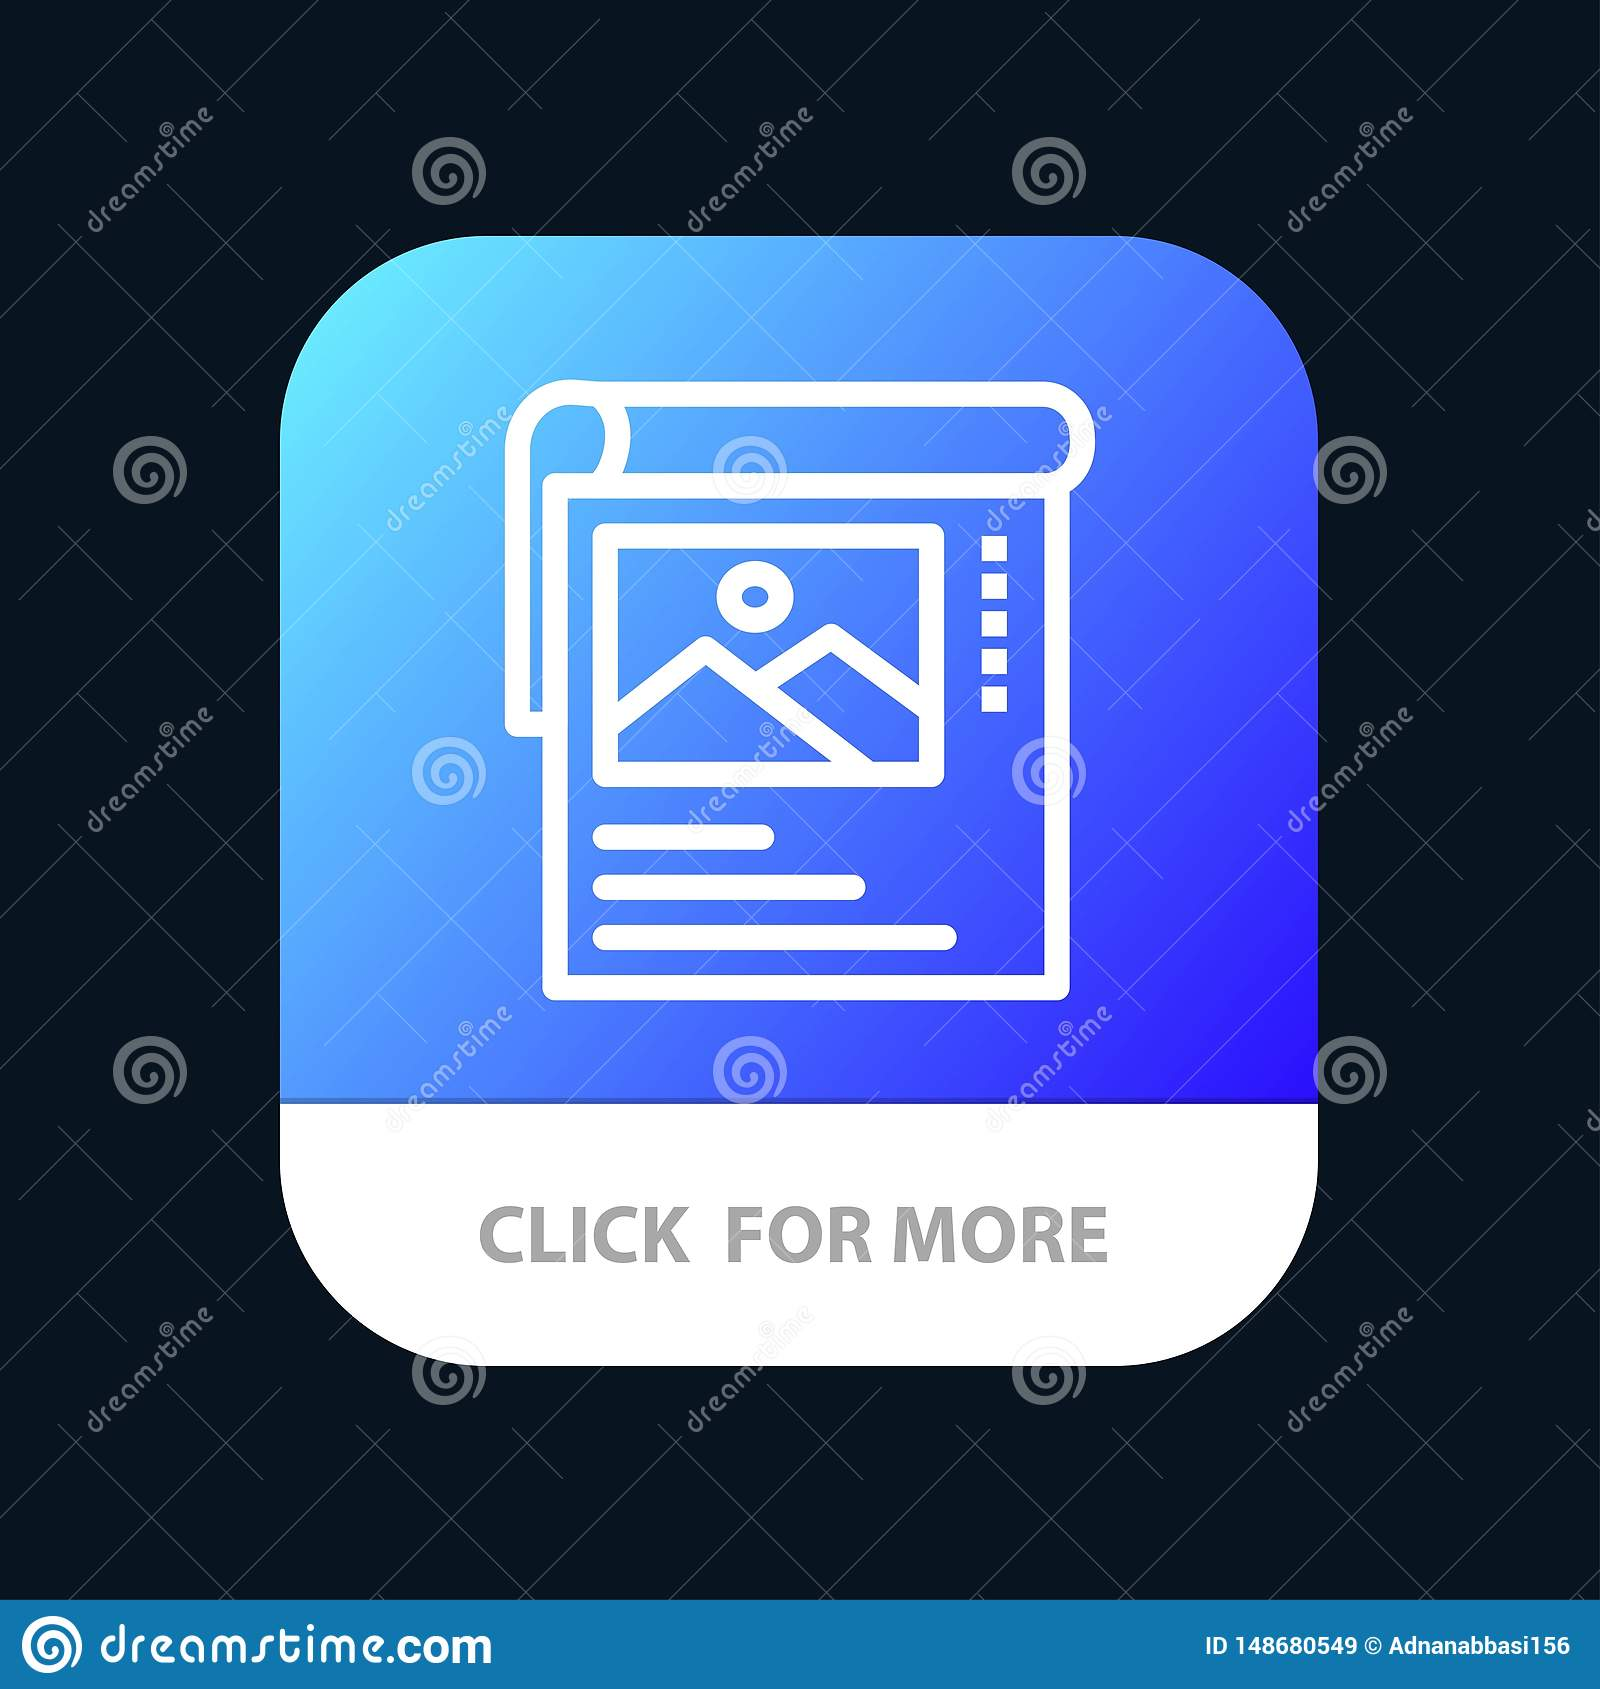 Wallpaper Poster Brochure Mobile App Button Android And